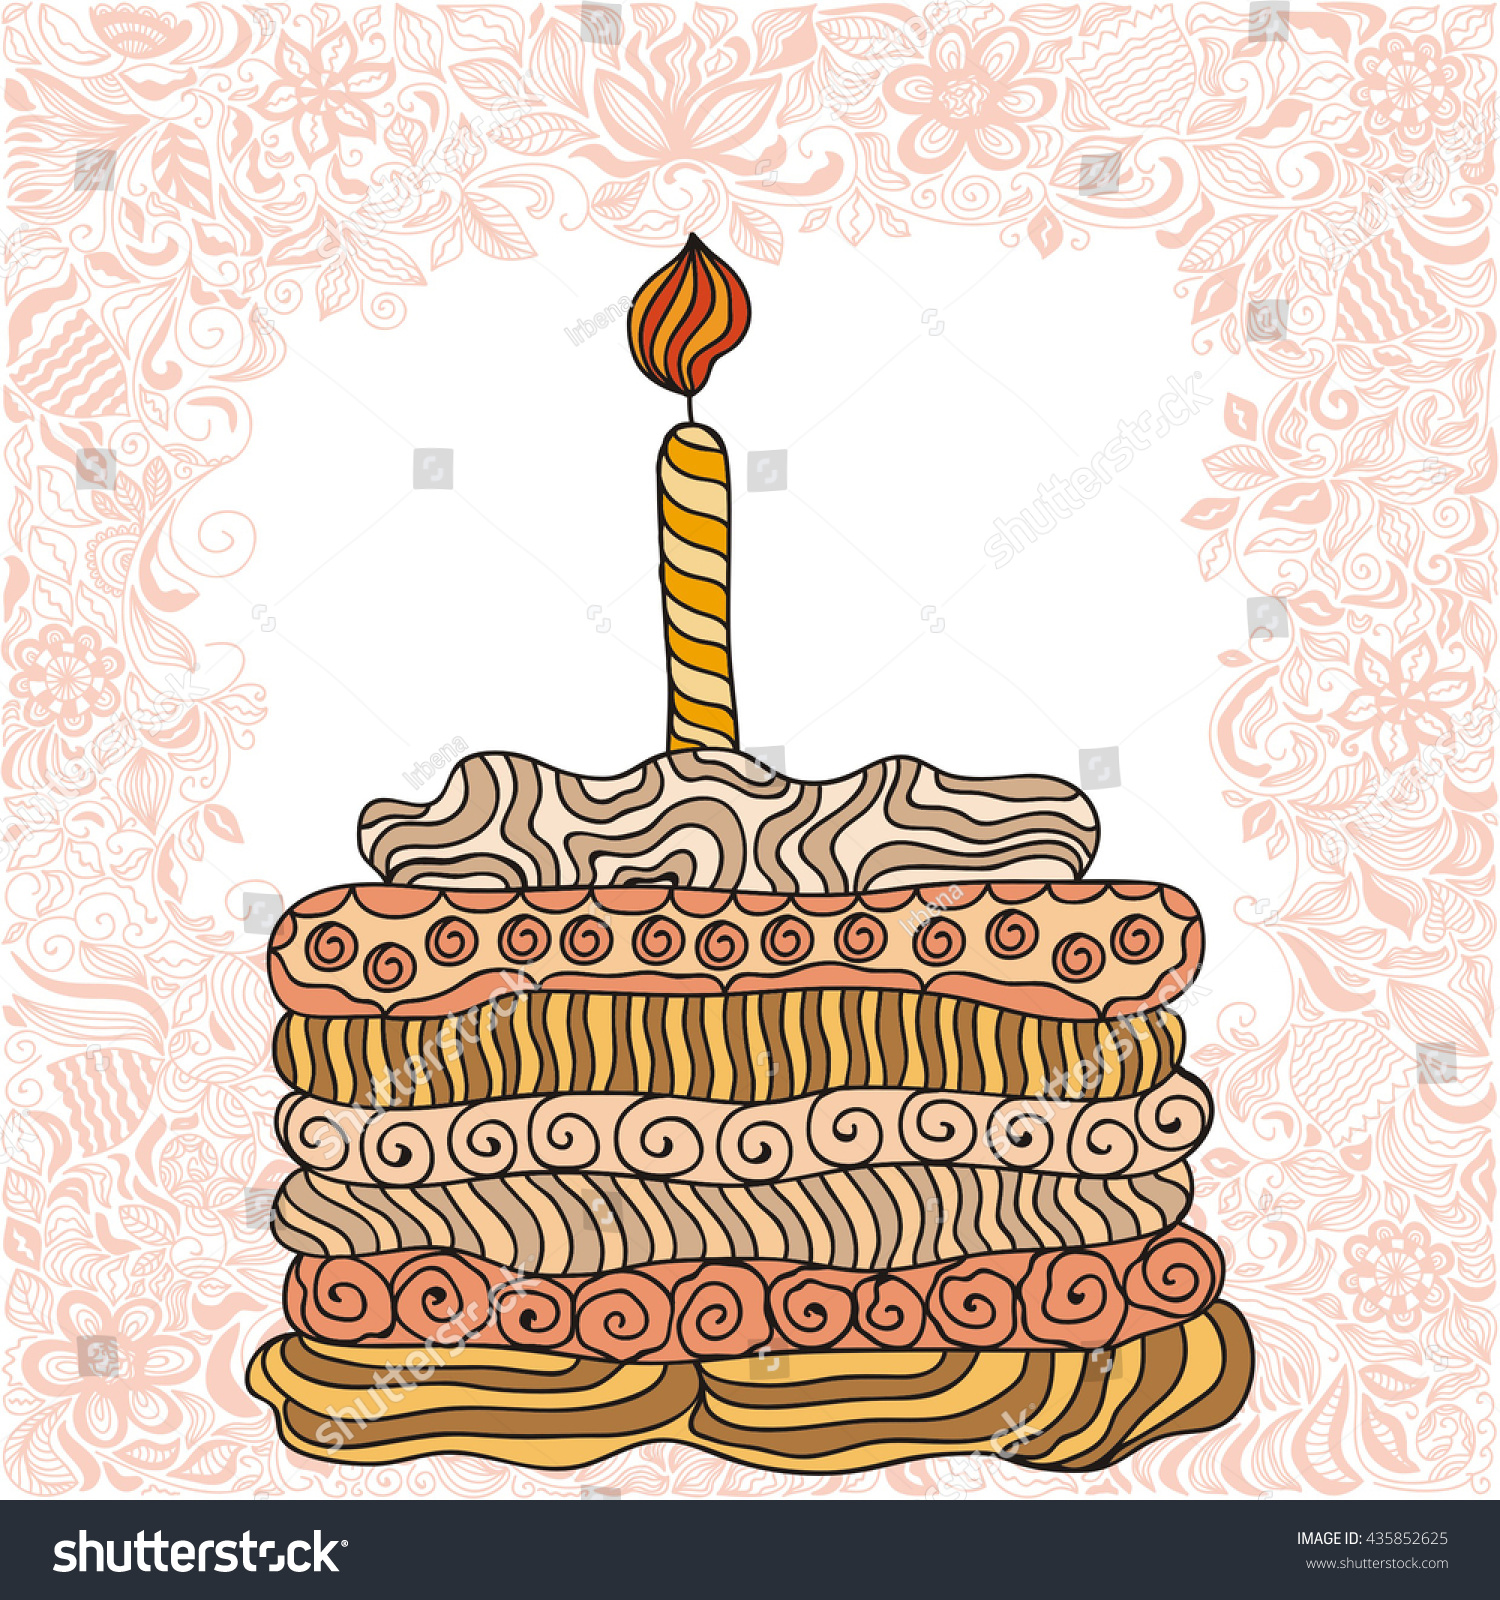 Beautiful Birthday Cake Vector Image Inspiration of Cake and